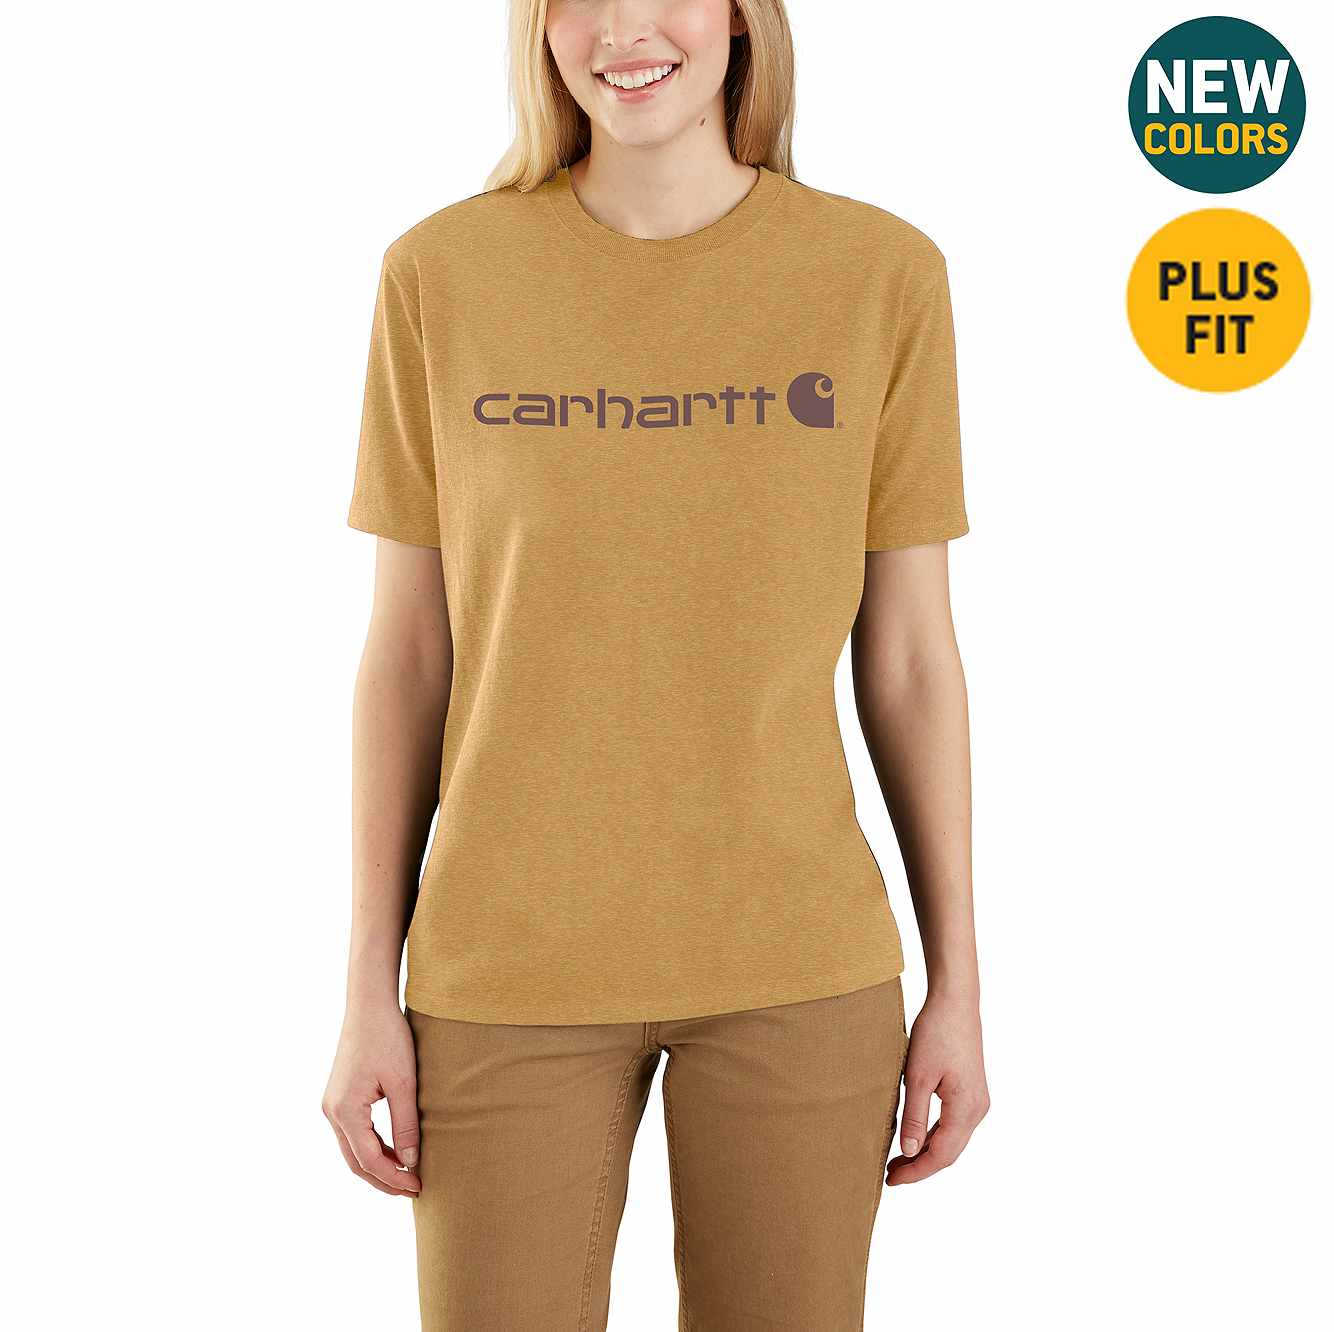 Picture of WK195 Workwear Logo Short Sleeve T-Shirt in Yellowstone Heather